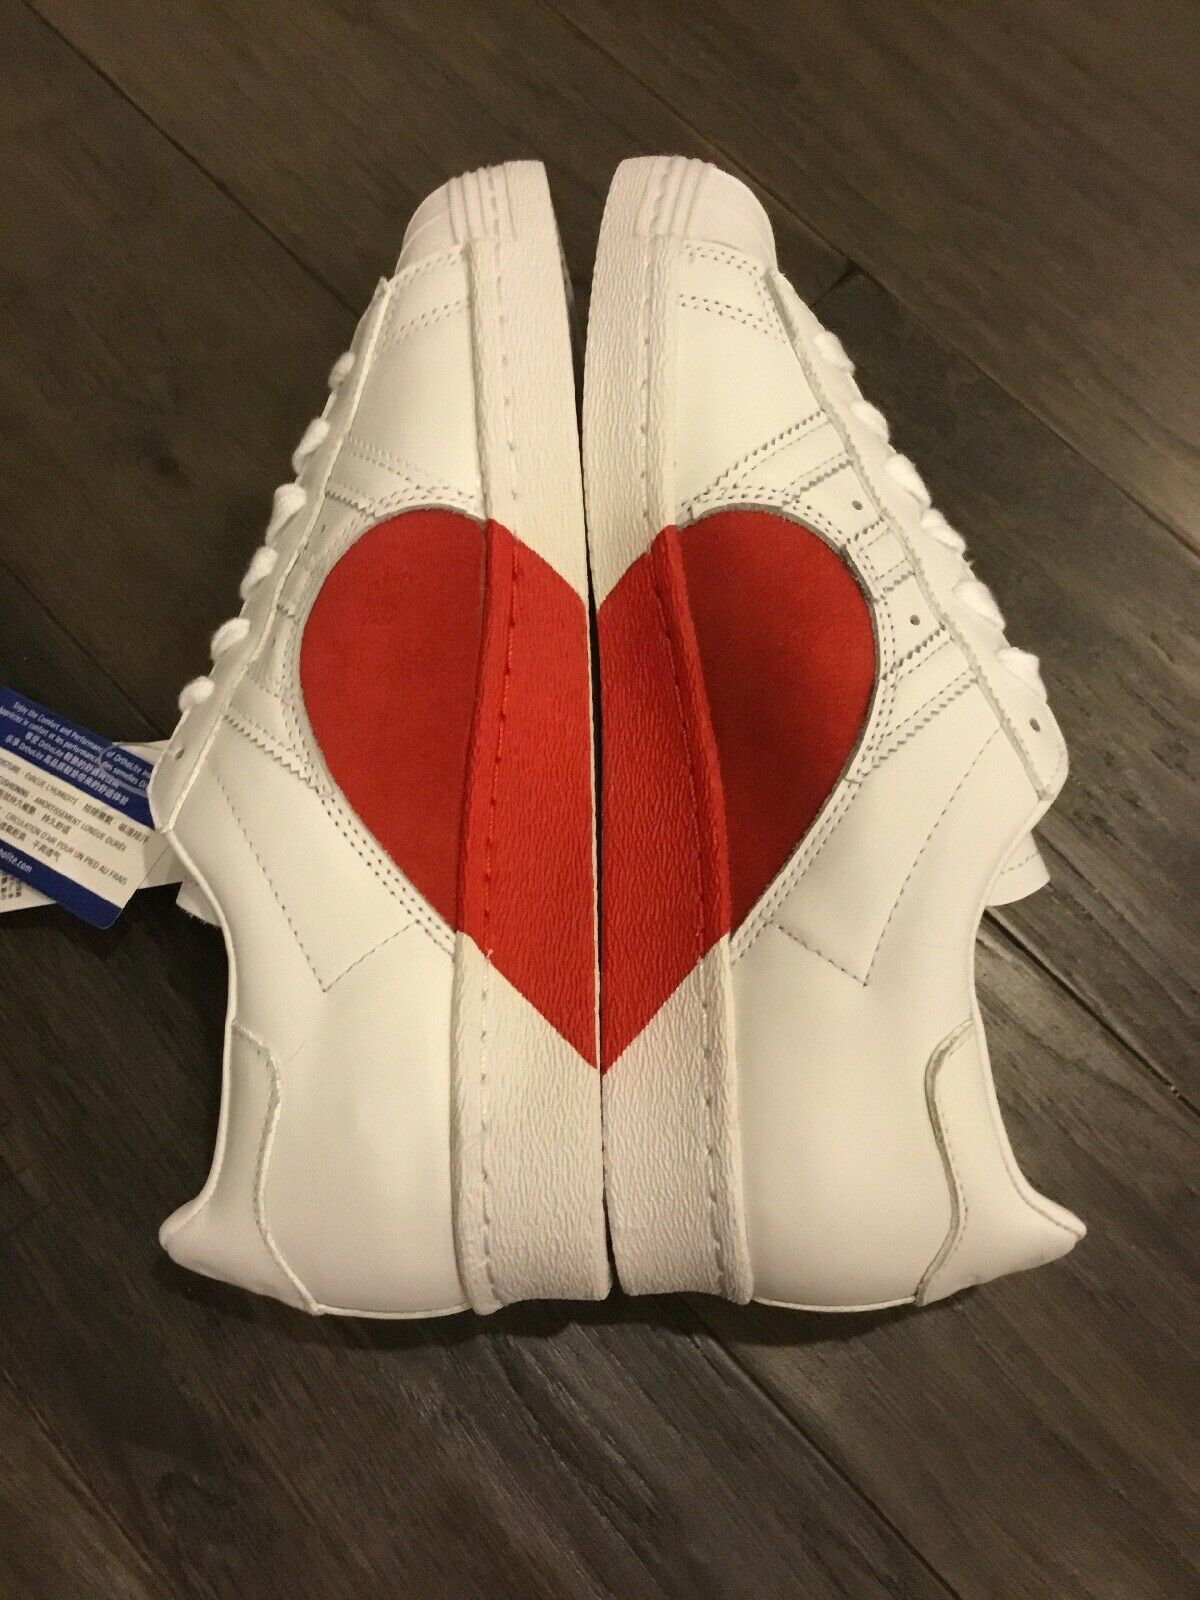 Adidas Superstars Shell toes Heart shoes Sneakers New CQ3009 Women's Size 7